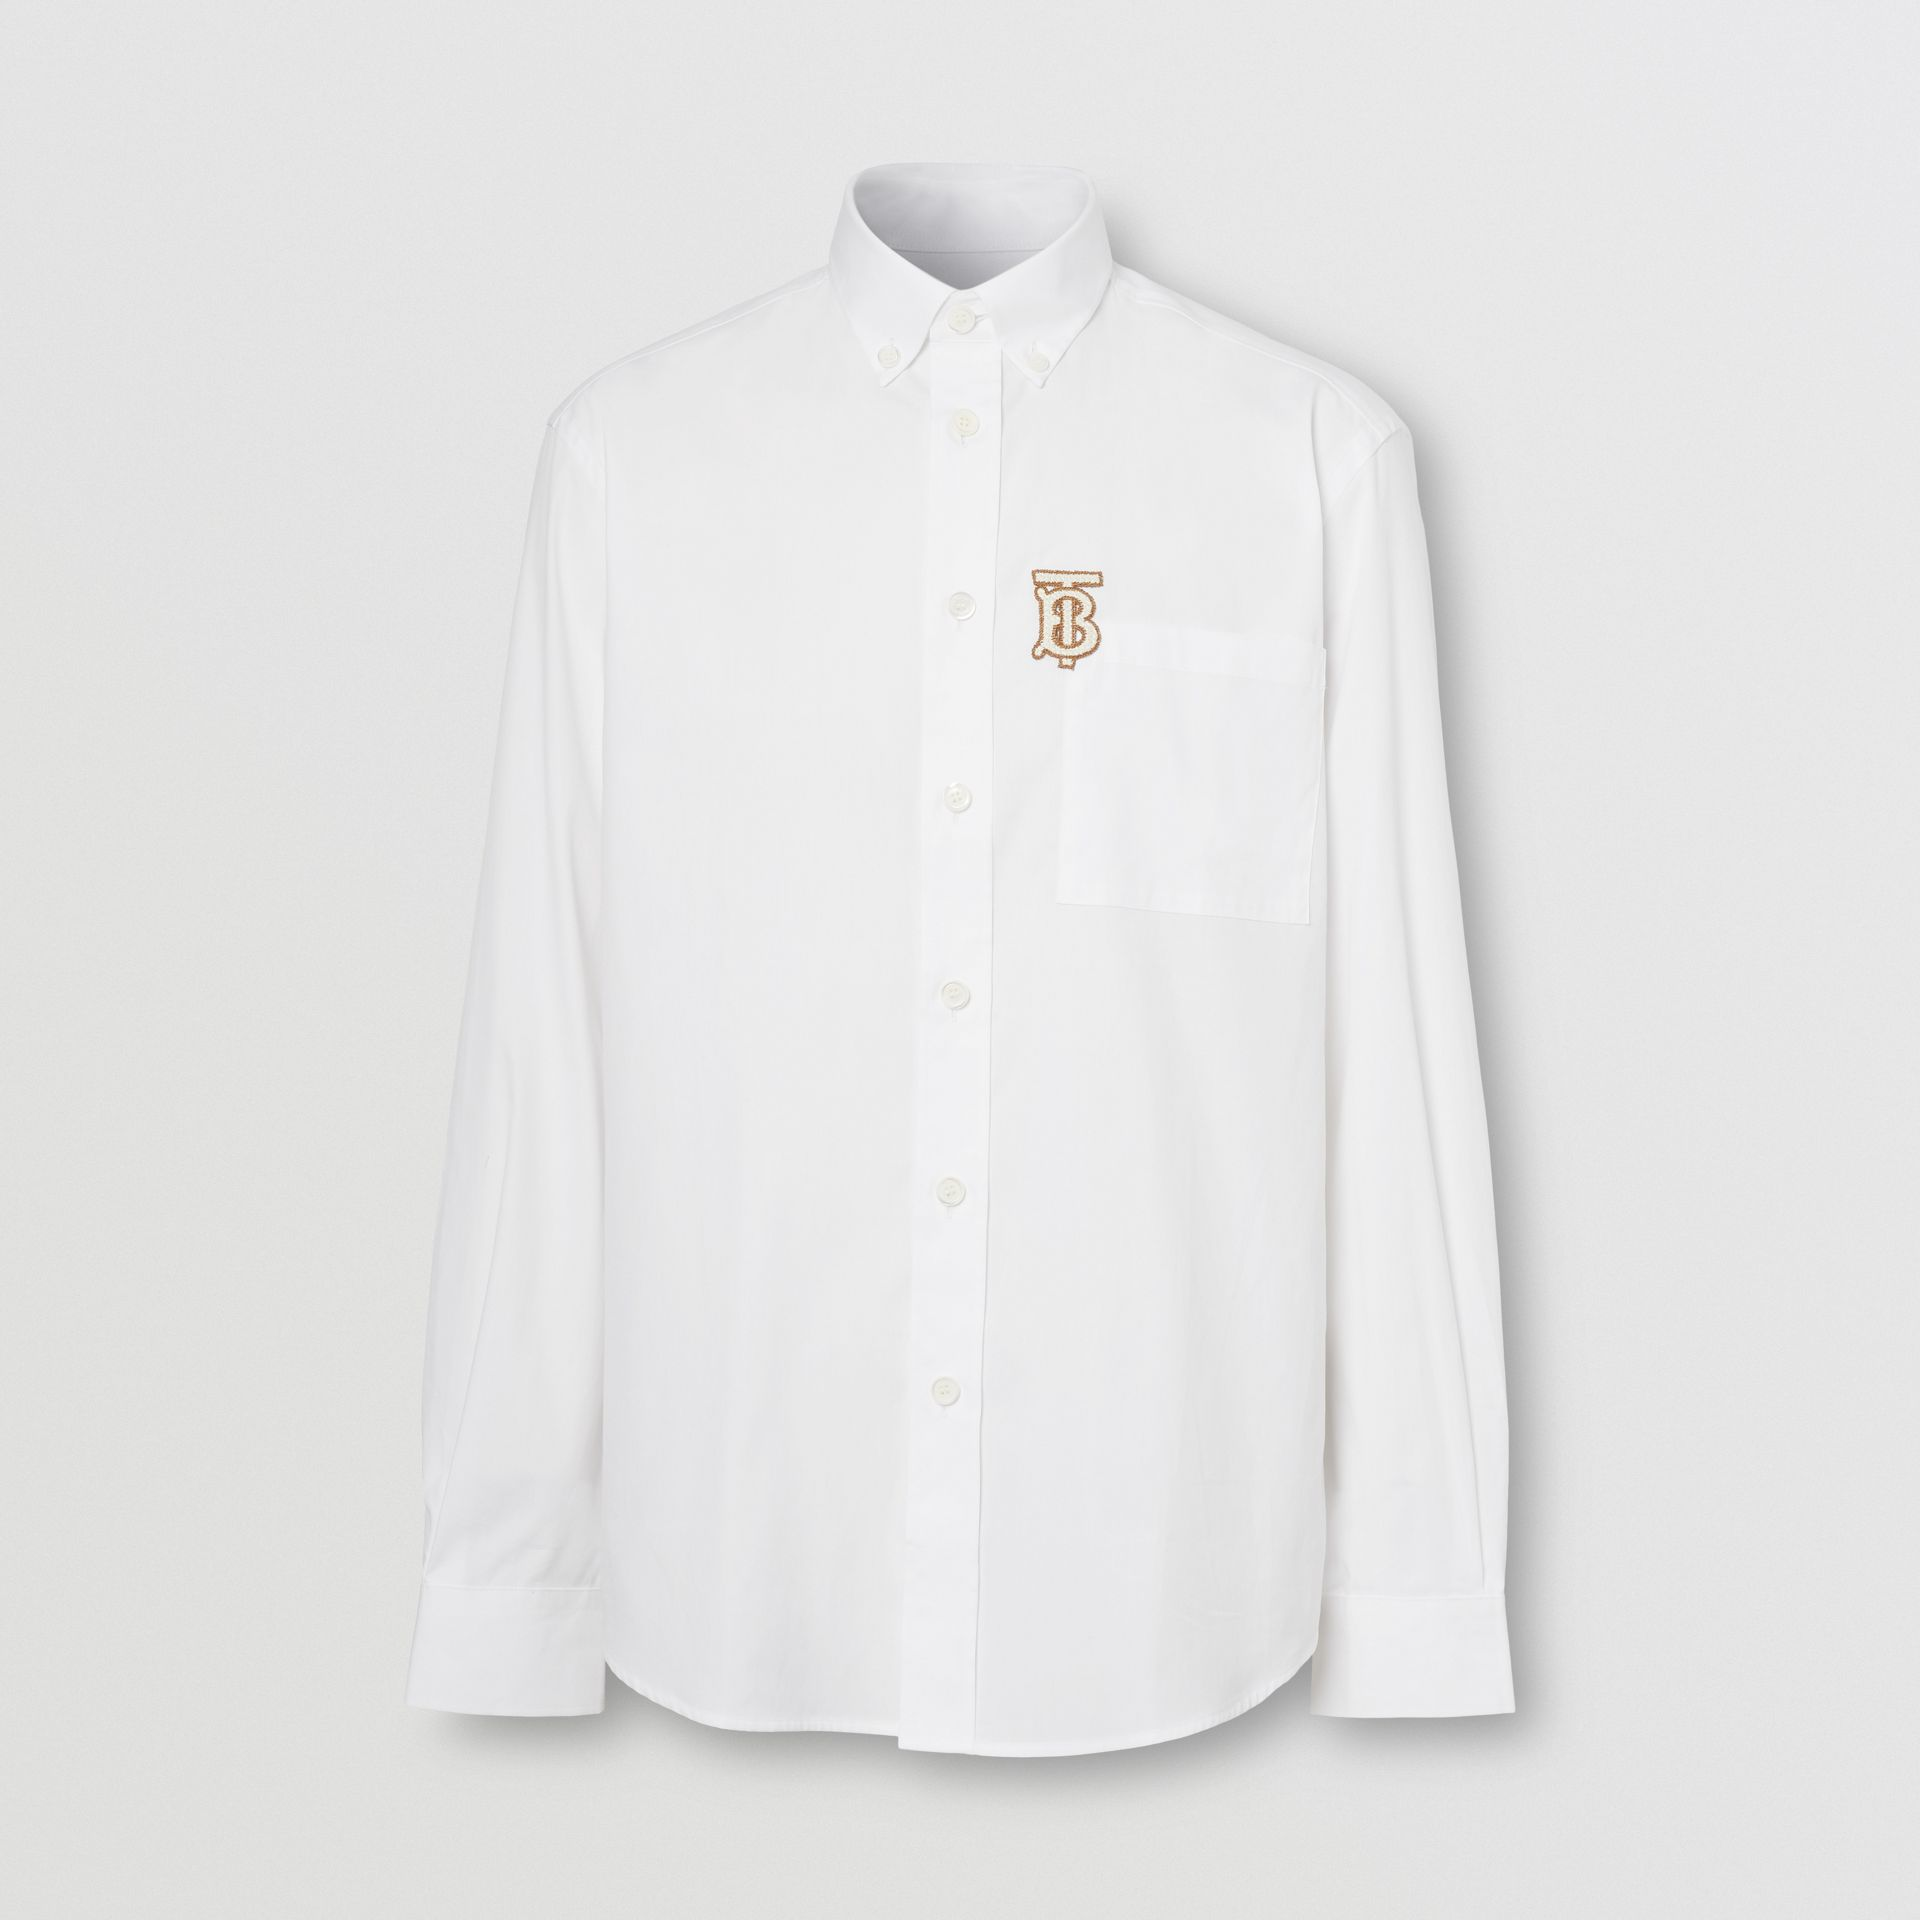 Monogrom Motif Stretch Cotton Poplin Shirt in White - Men | Burberry Hong Kong S.A.R. - gallery image 3